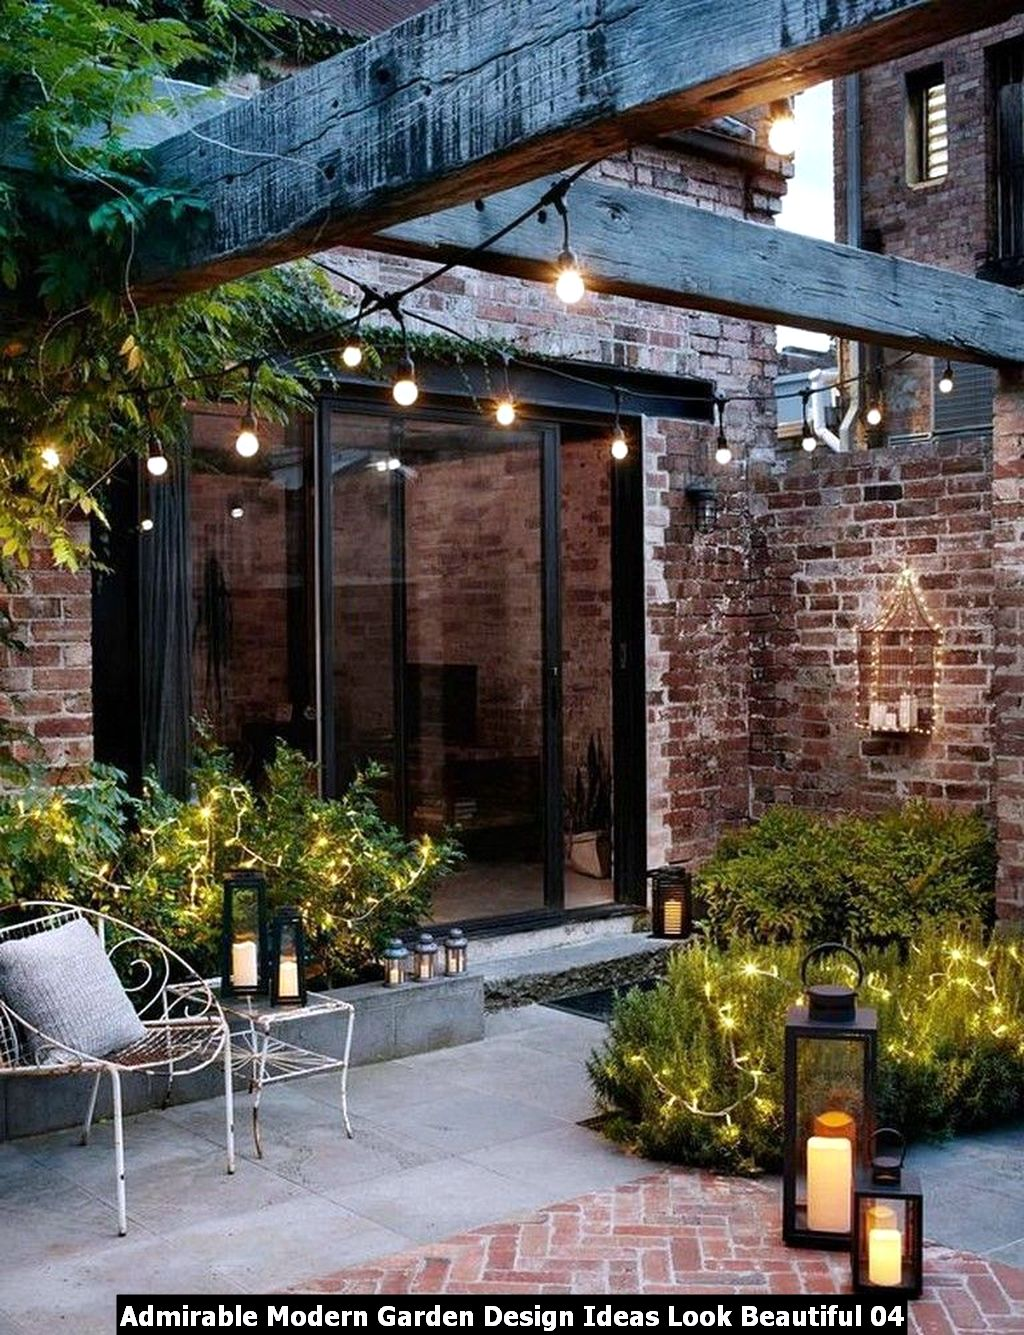 Admirable Modern Garden Design Ideas Look Beautiful 04